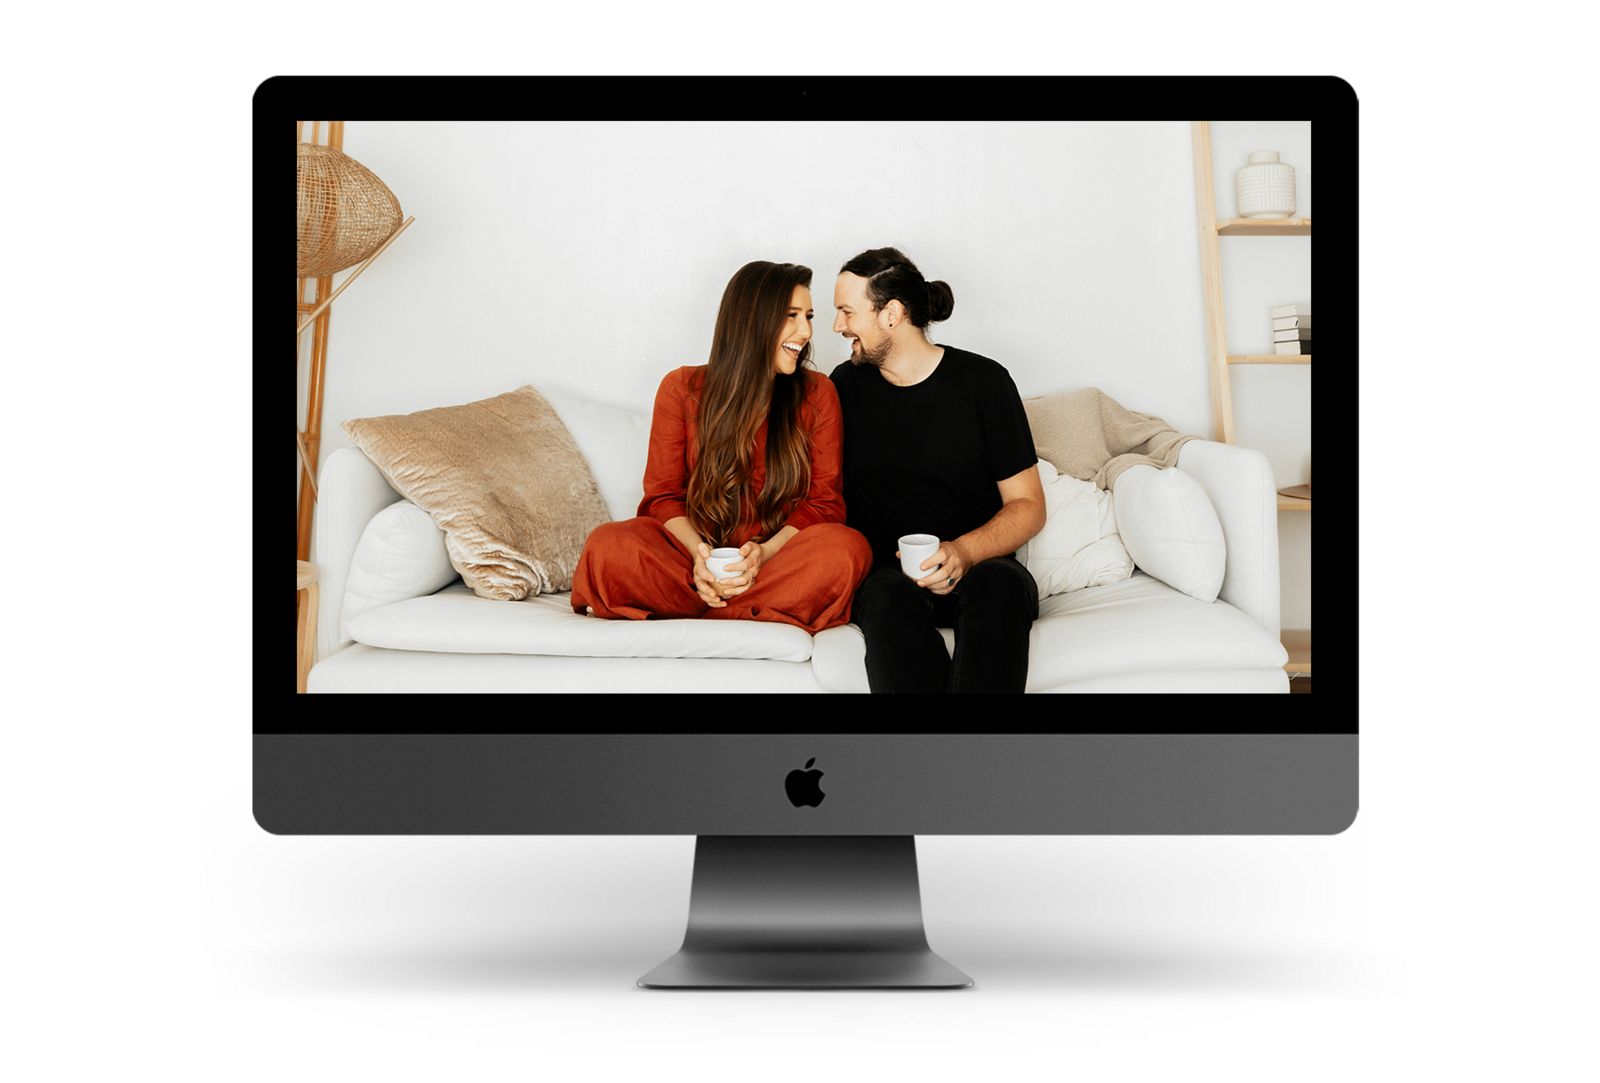 HOMEBODY PRESET BUNDLE iMac athena camron lightroom editing tutorials